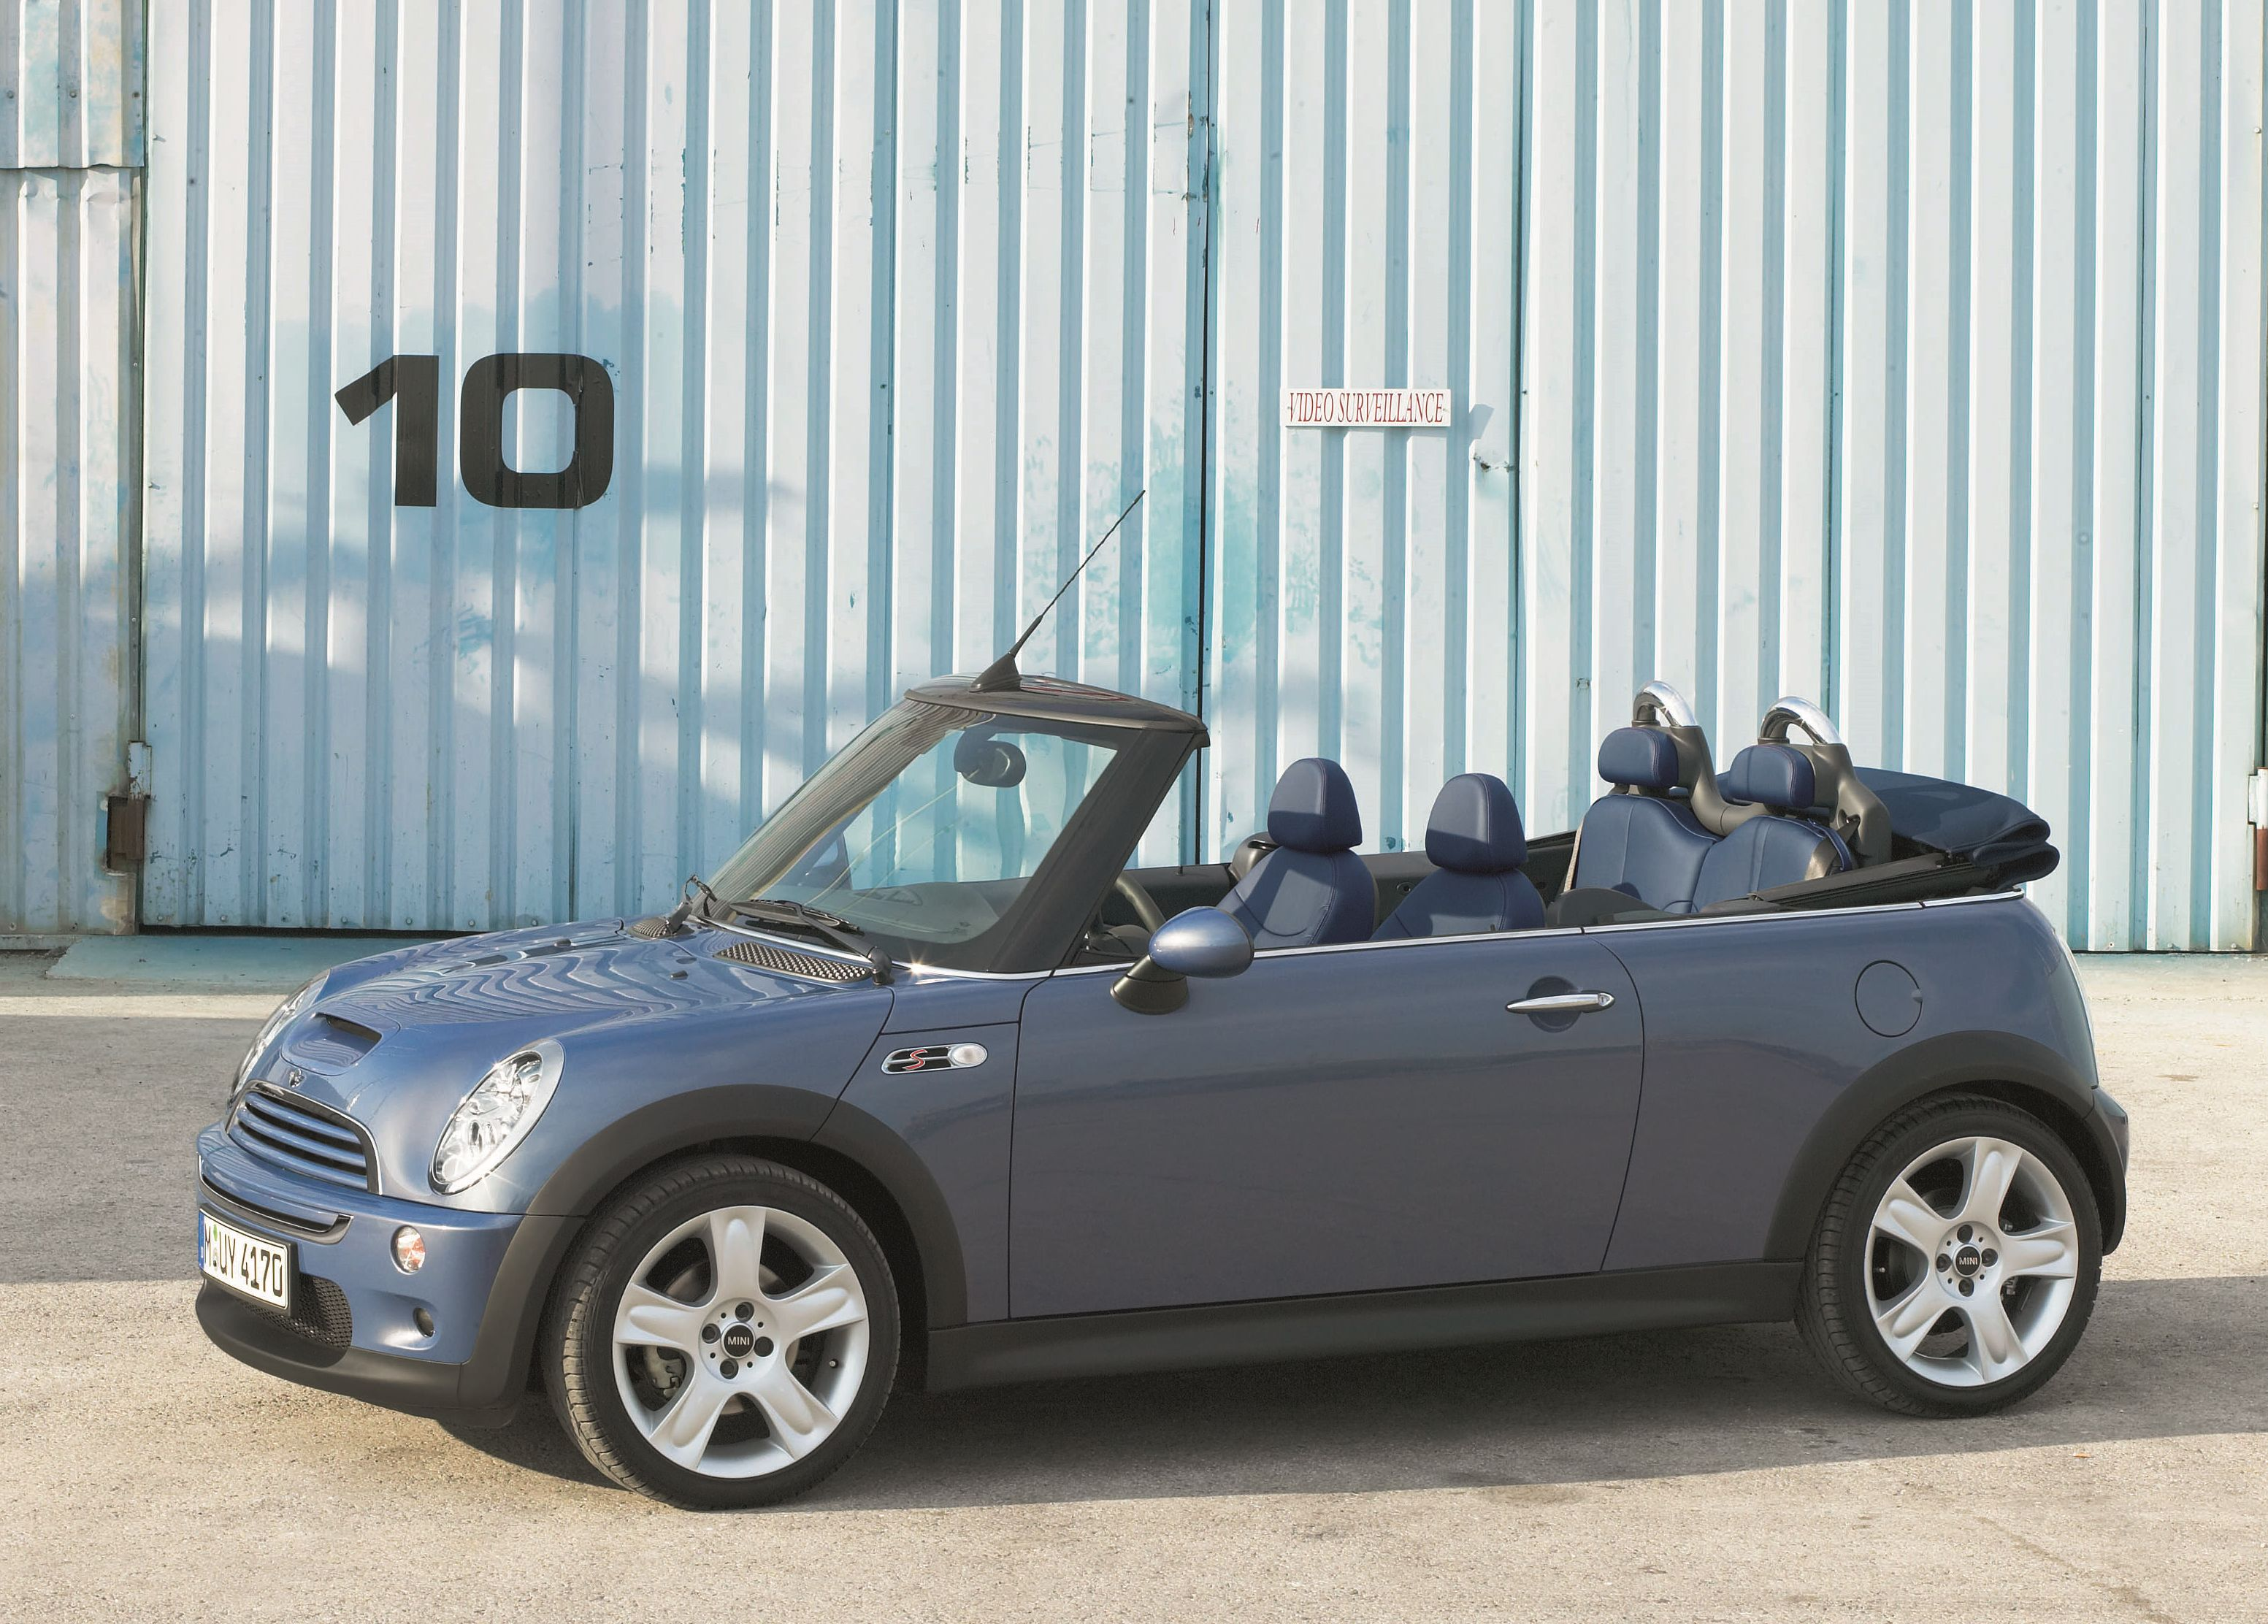 MiniCabrio10years